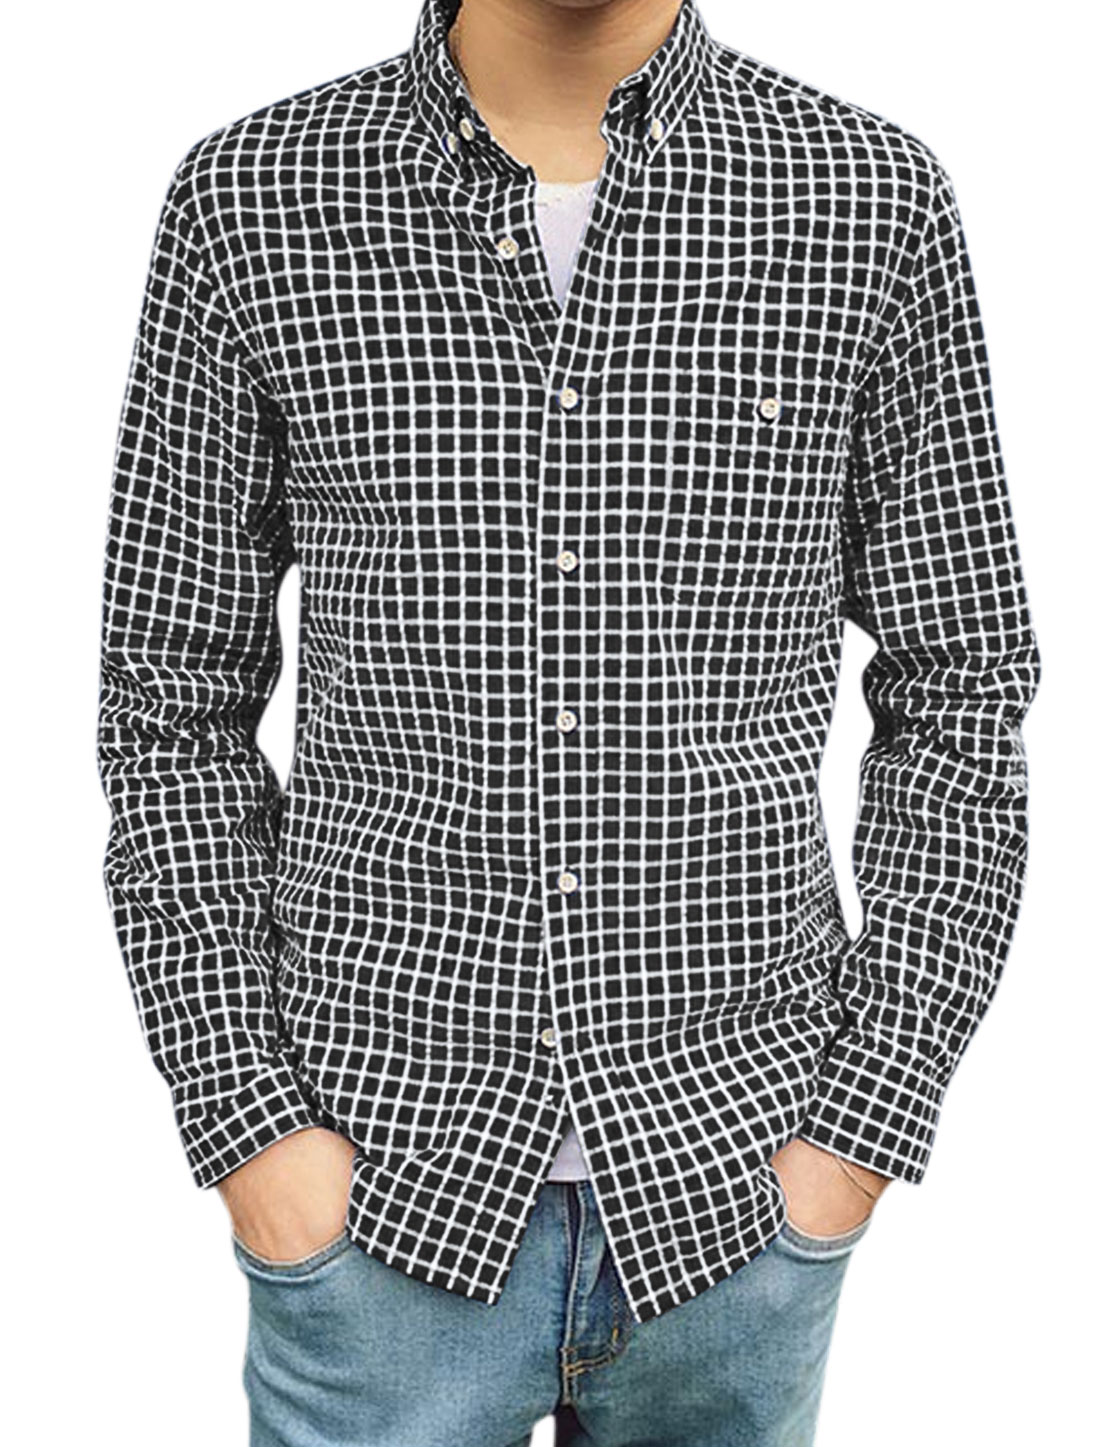 Men Long Sleeves Collared Single Breasted Plaids Shirt Black M